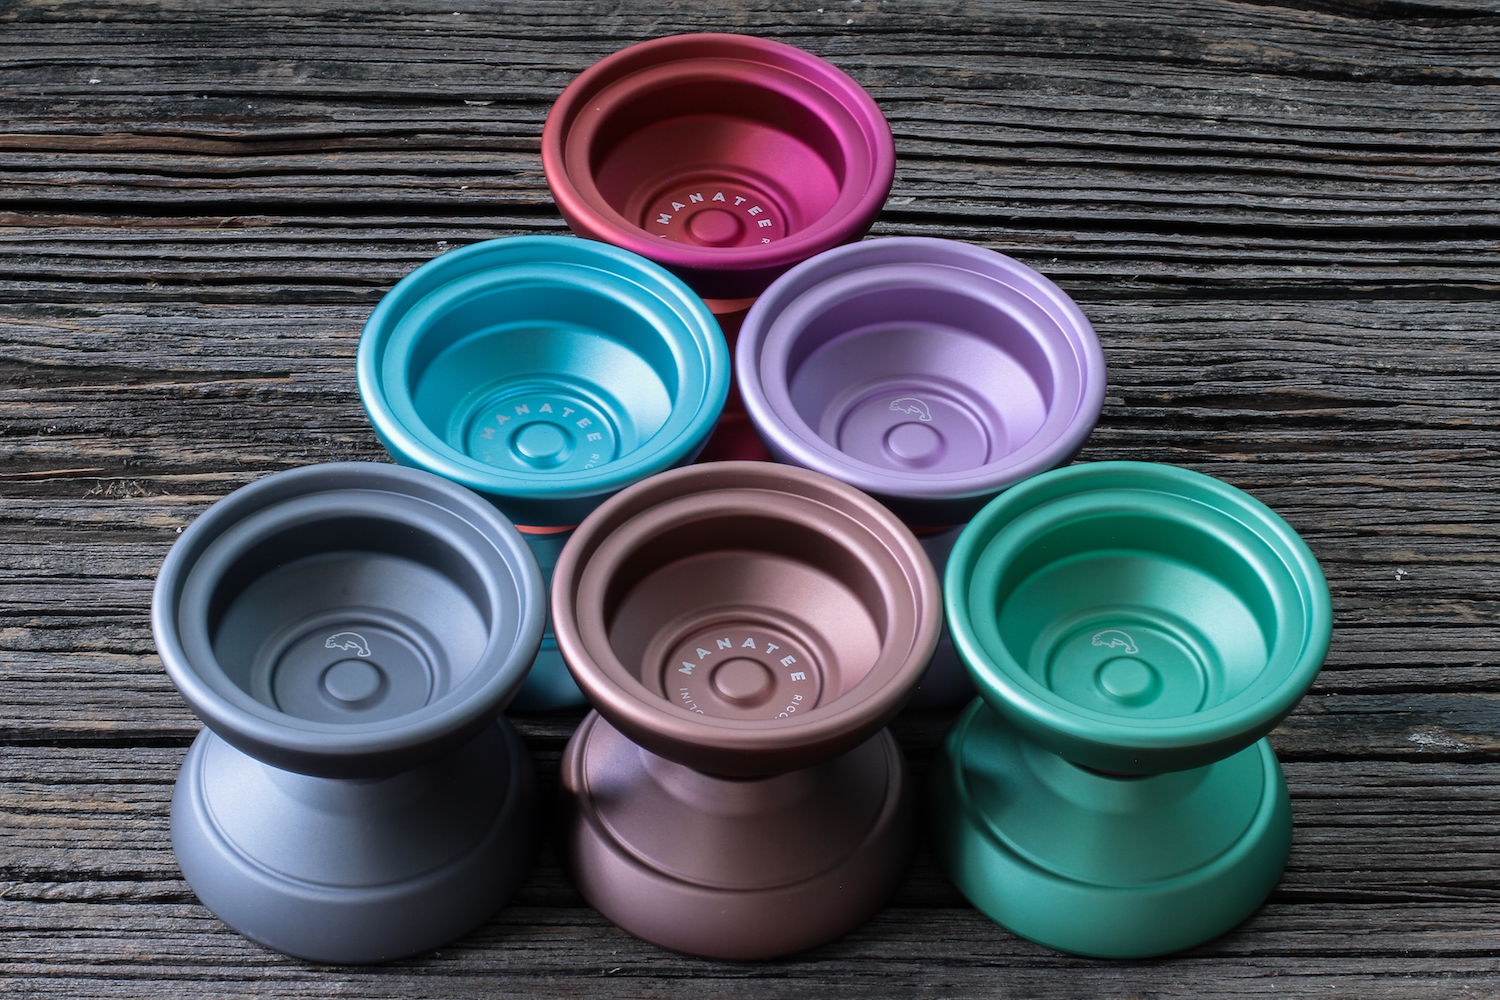 CLYW Manatee First Release